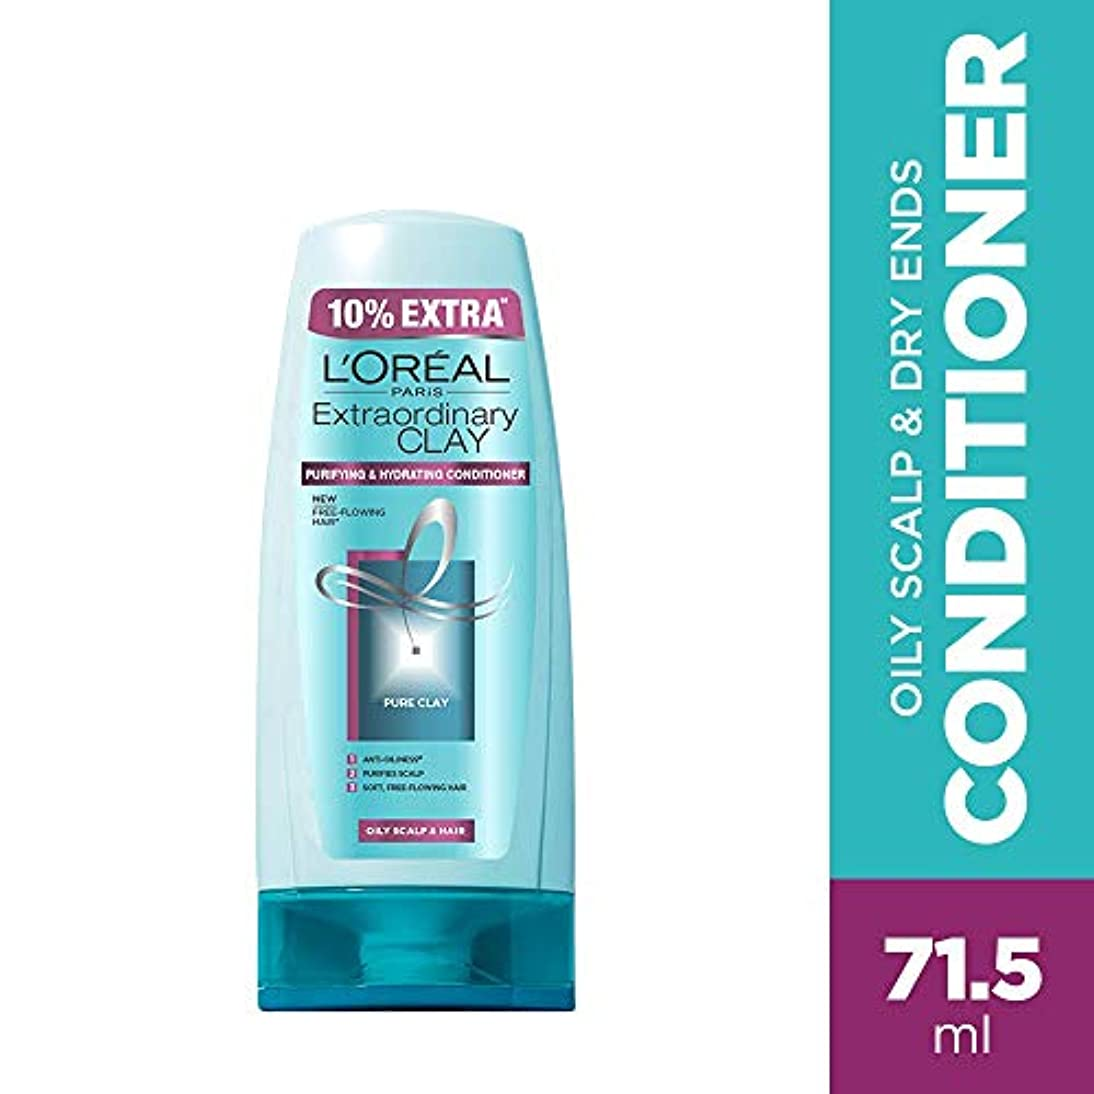 腐食するシャツチチカカ湖L'Oreal Paris Extraordinary Clay Conditioner, 65ml (With 10% Extra) (Loreal Ship From India)